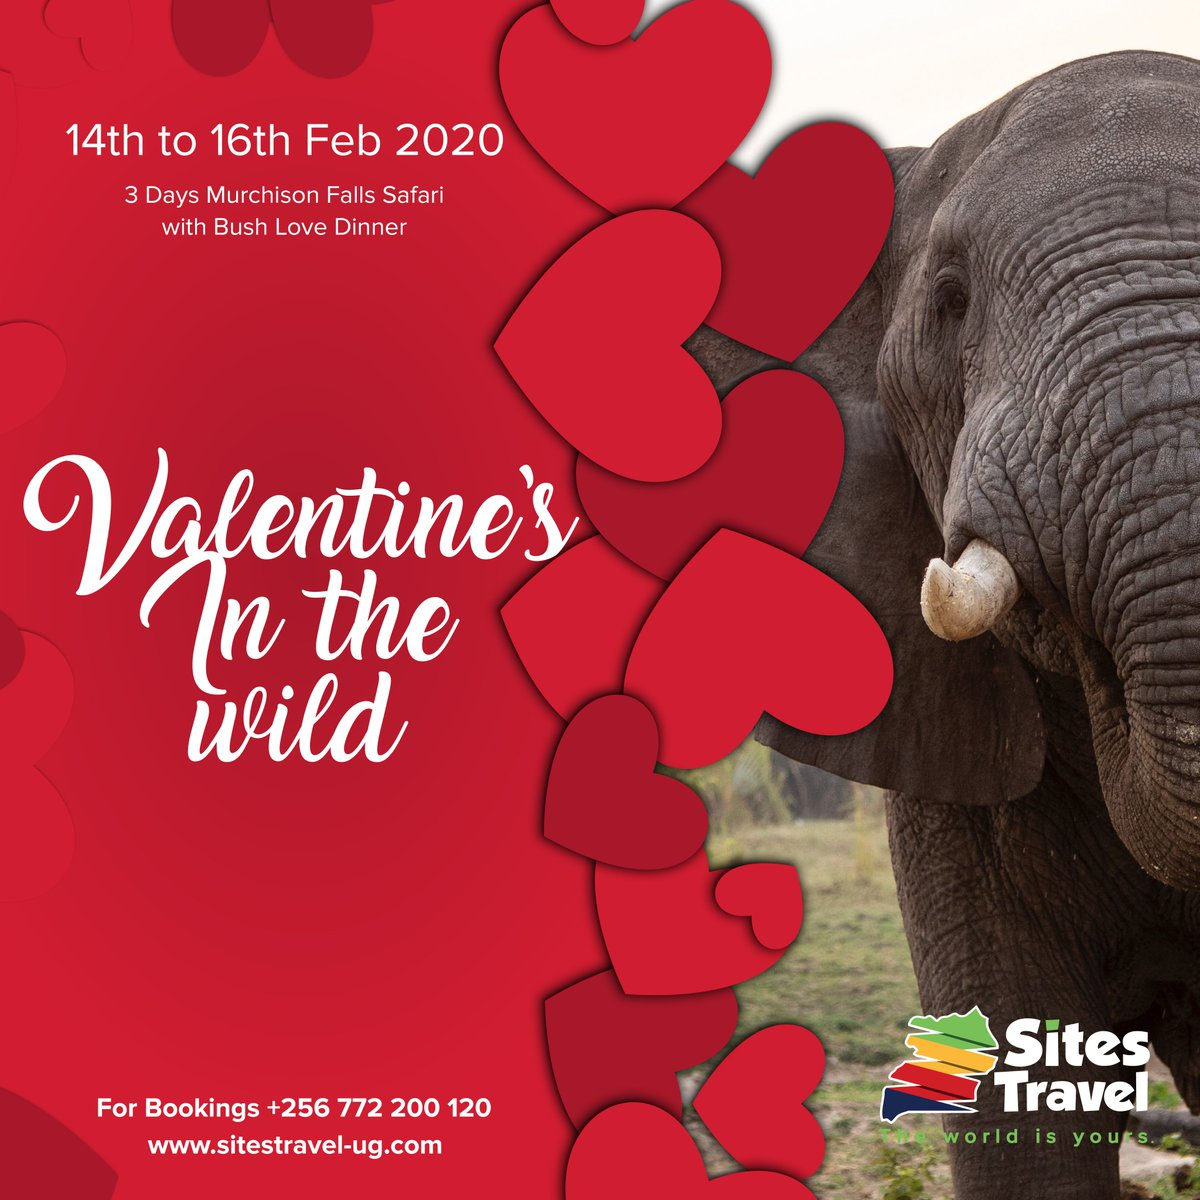 A romantic trip to Murchison falls National Park with a brief stop at Ziwa Rhino sanctuary, a morning game drive, afternoon boat cruise with a romantic bush dinner at Kabalega Wilderness Lodge awaits you and yours this love season. #TheWorldIsYours reservations@sitestravel-ug.com <br>http://pic.twitter.com/tOGaPOJbqX